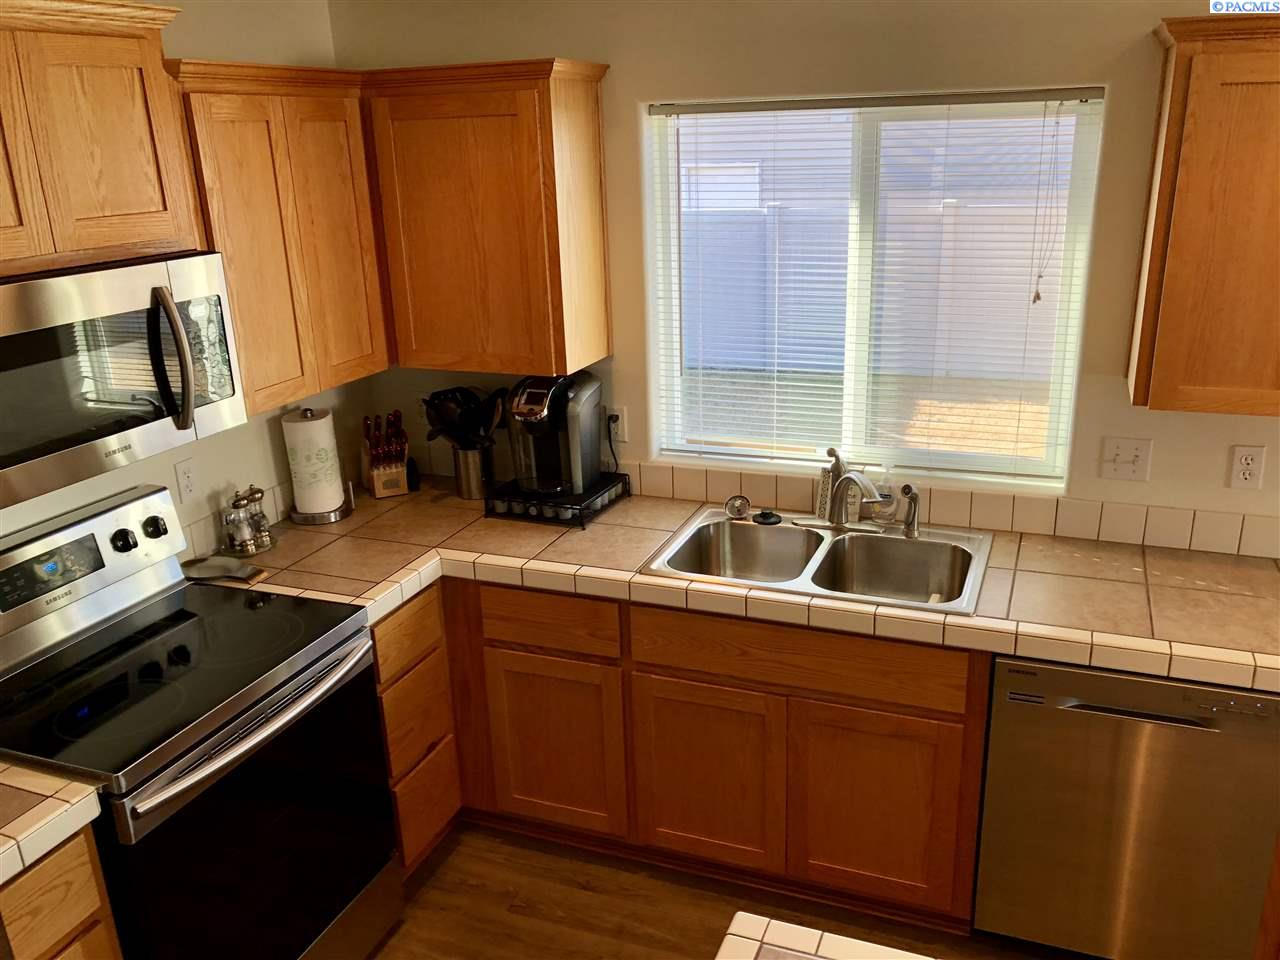 Additional photo for property listing at 7923 Salmon Drive 7923 Salmon Drive Pasco, Washington 99301 United States